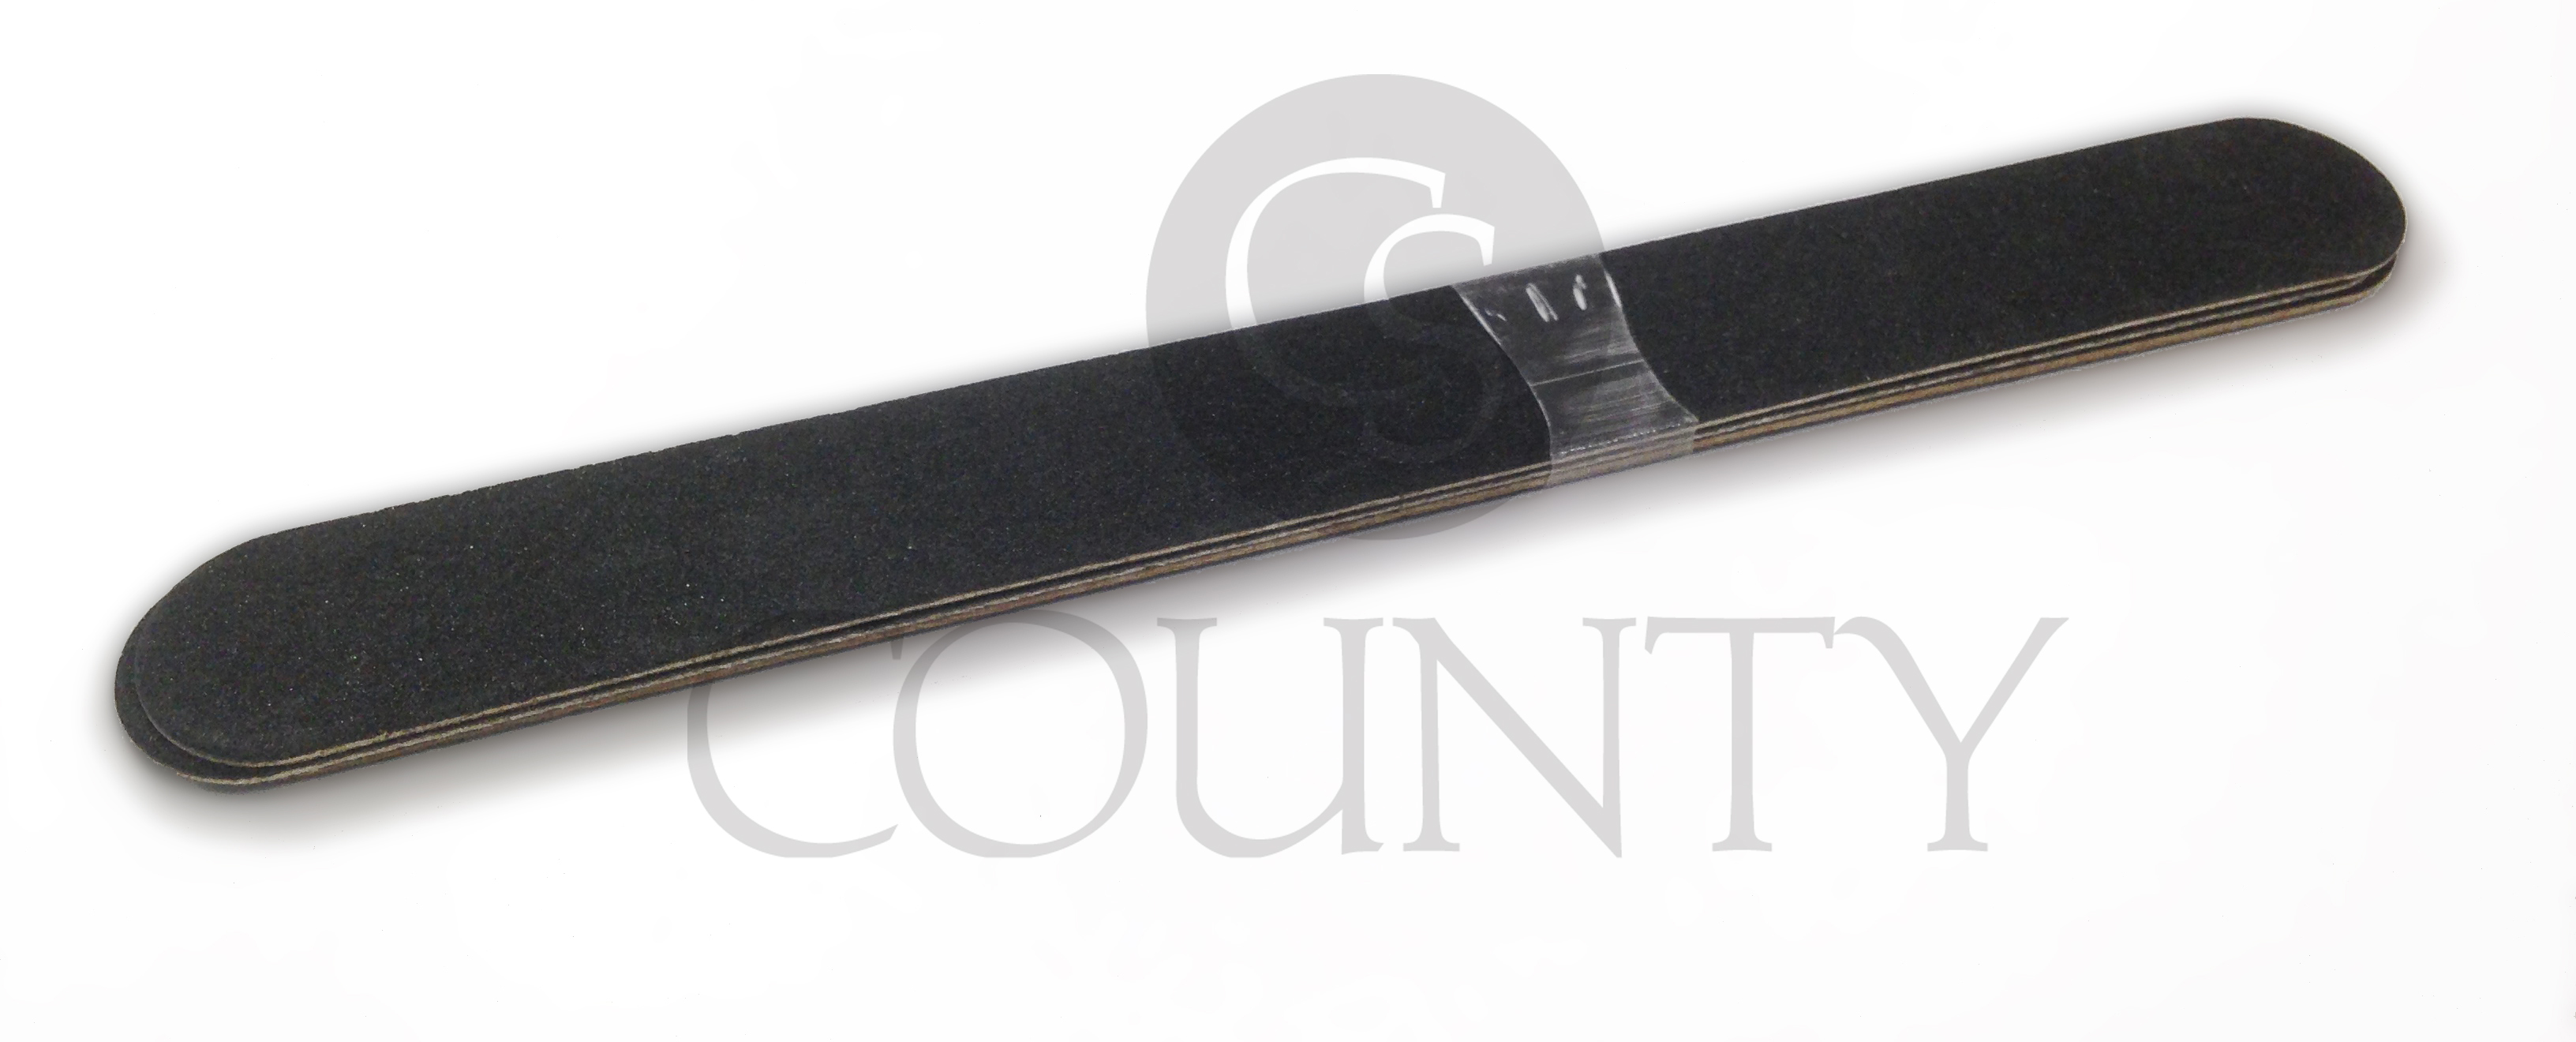 CS BEAUTY S8035 Emery Boards